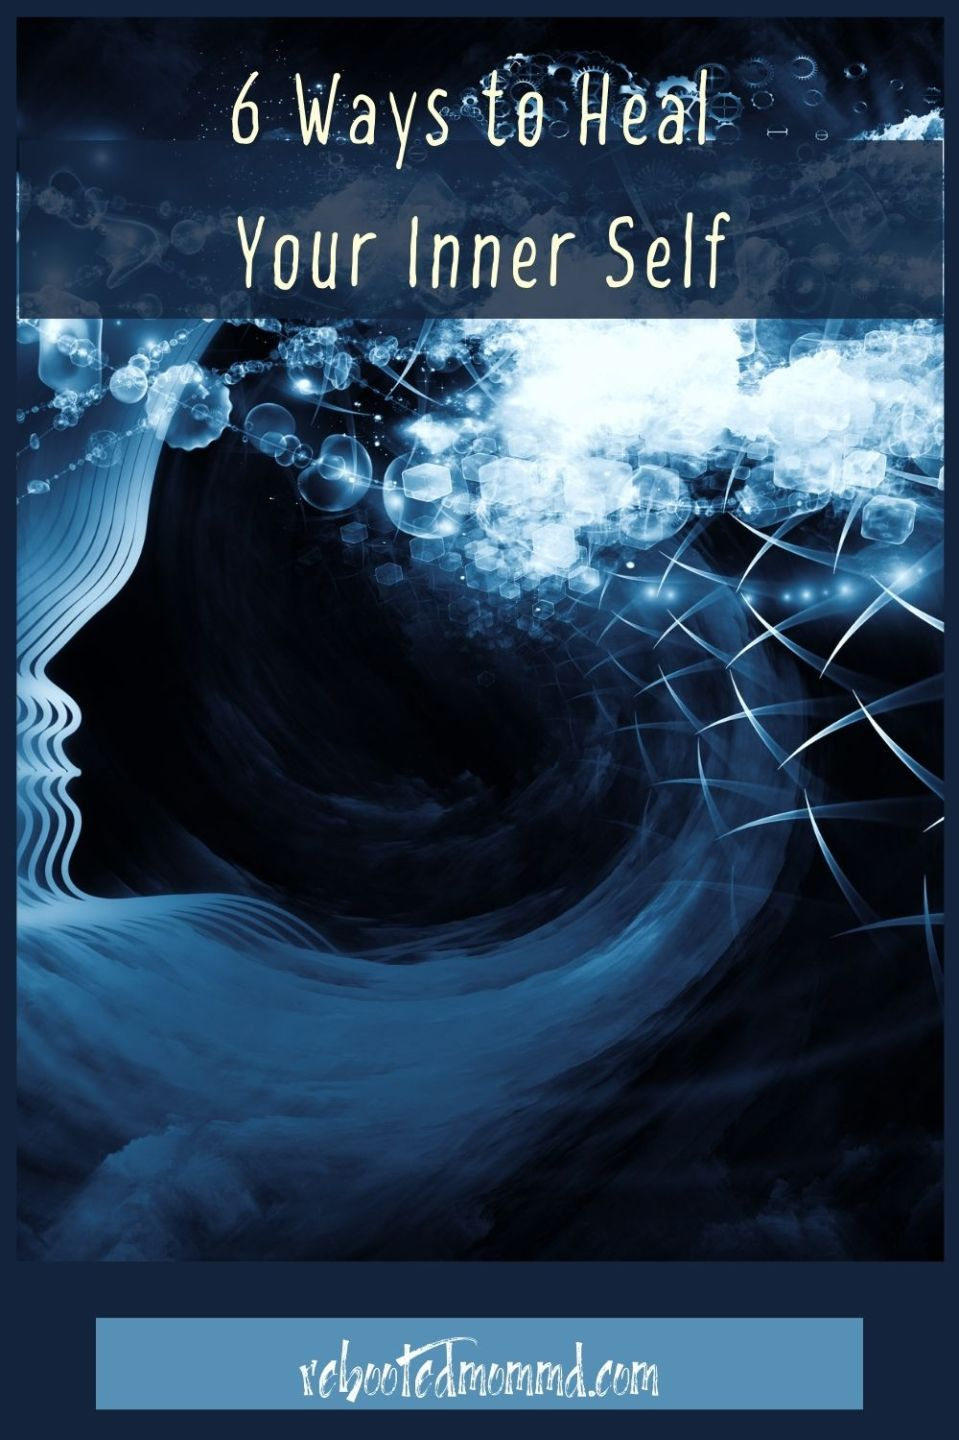 6 Ways to Heal Your Inner Self